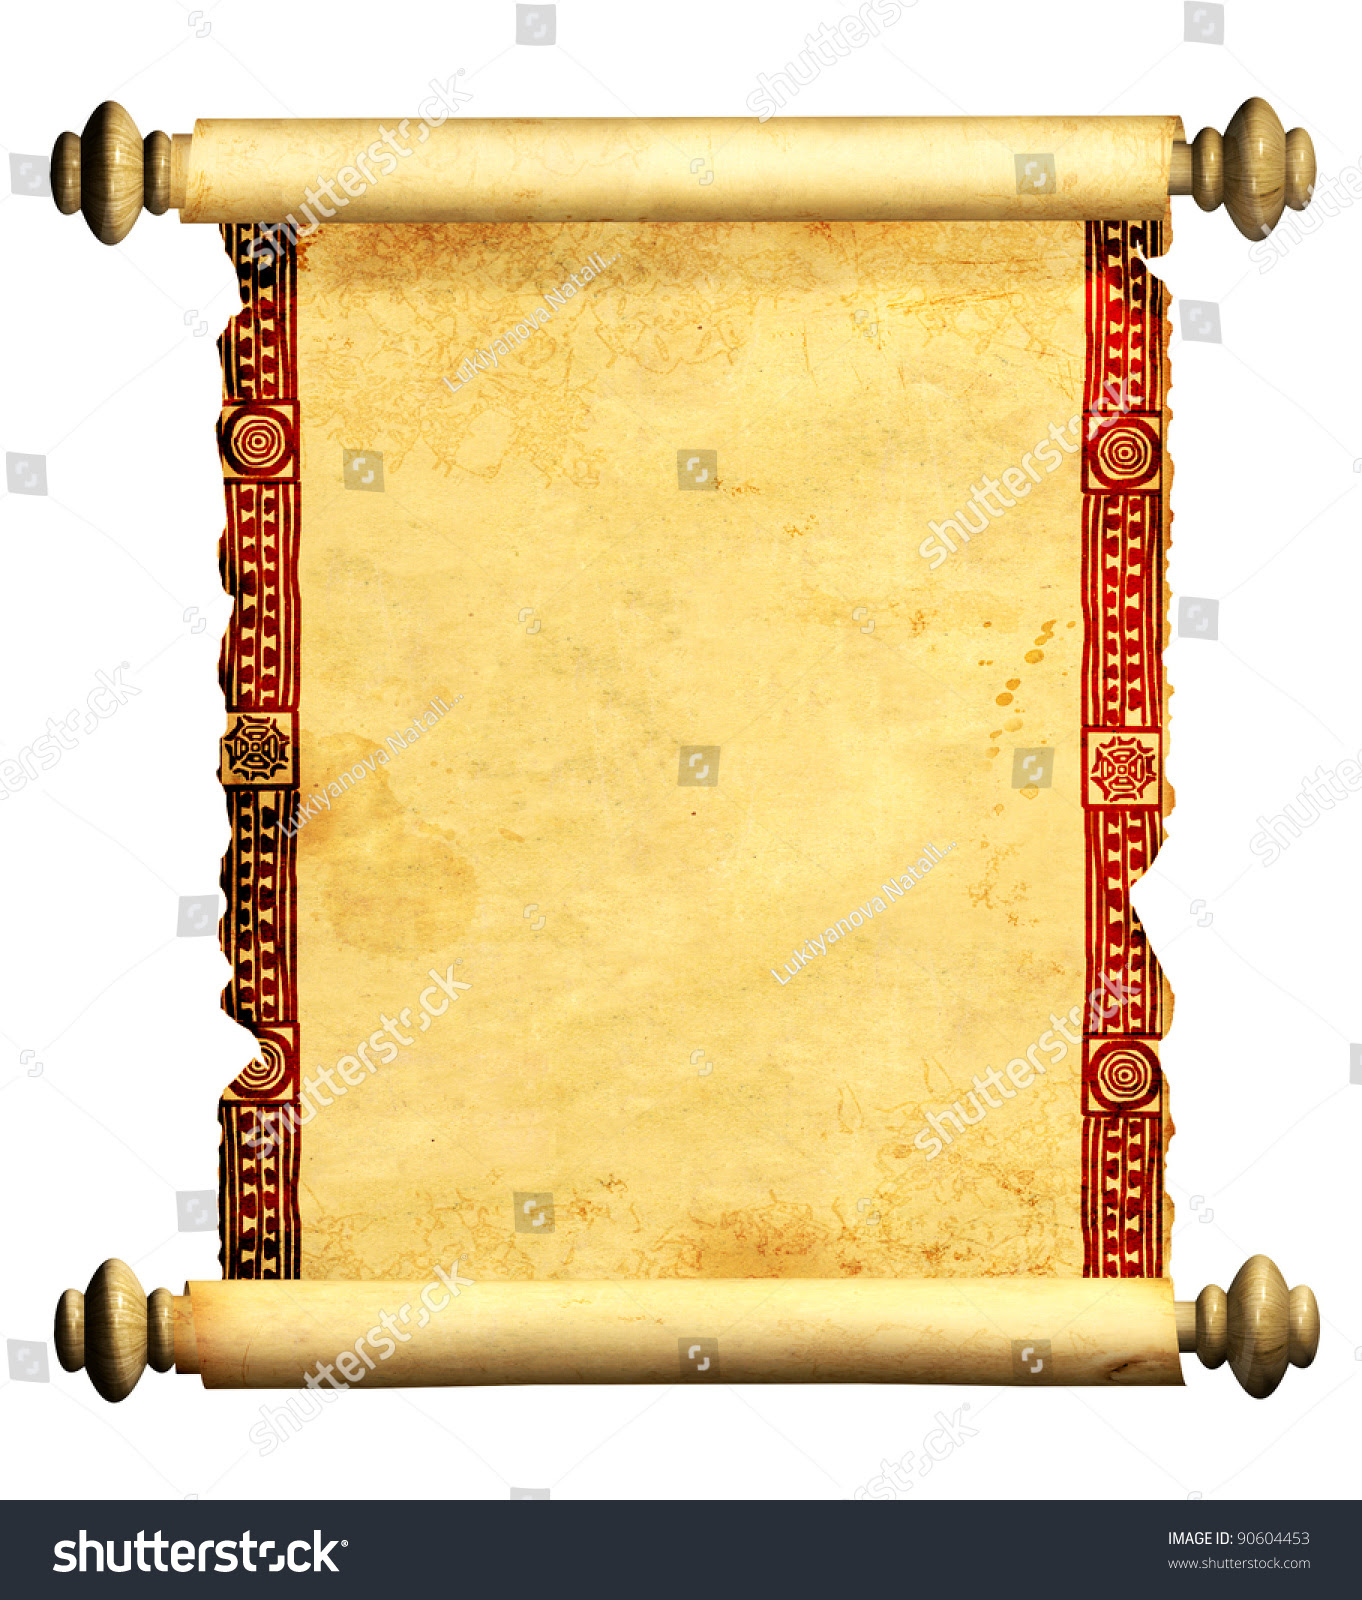 Scroll Old Parchment Object Isolated Over Stock Illustration ...